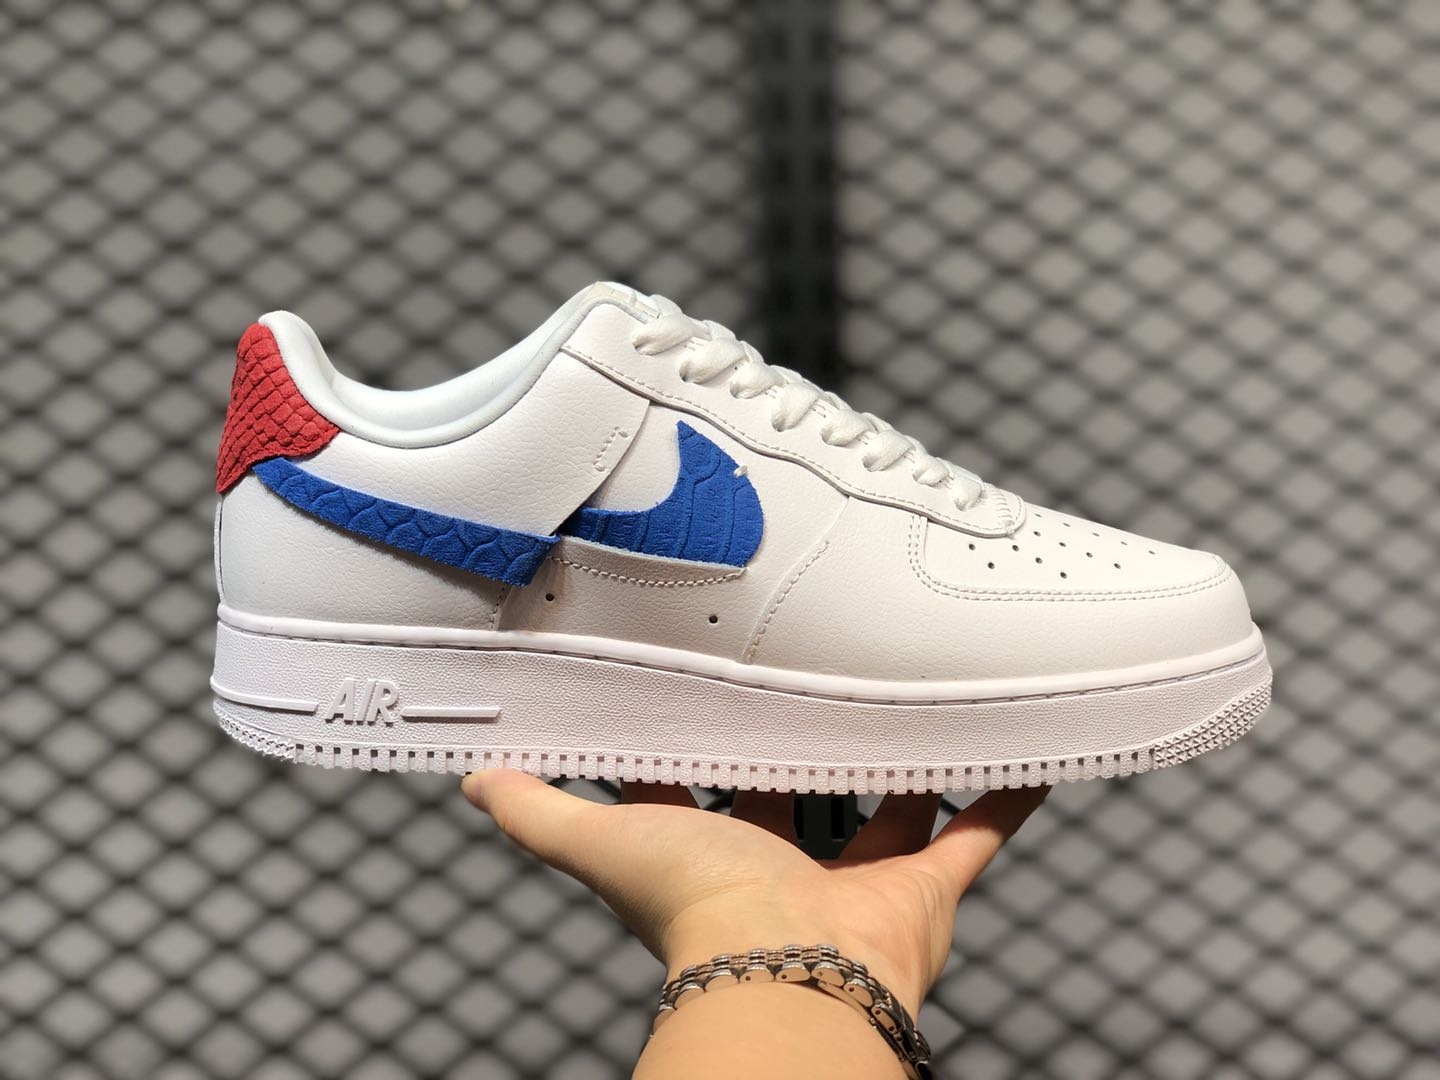 Nike Air Force 1 LXX White Red Blue